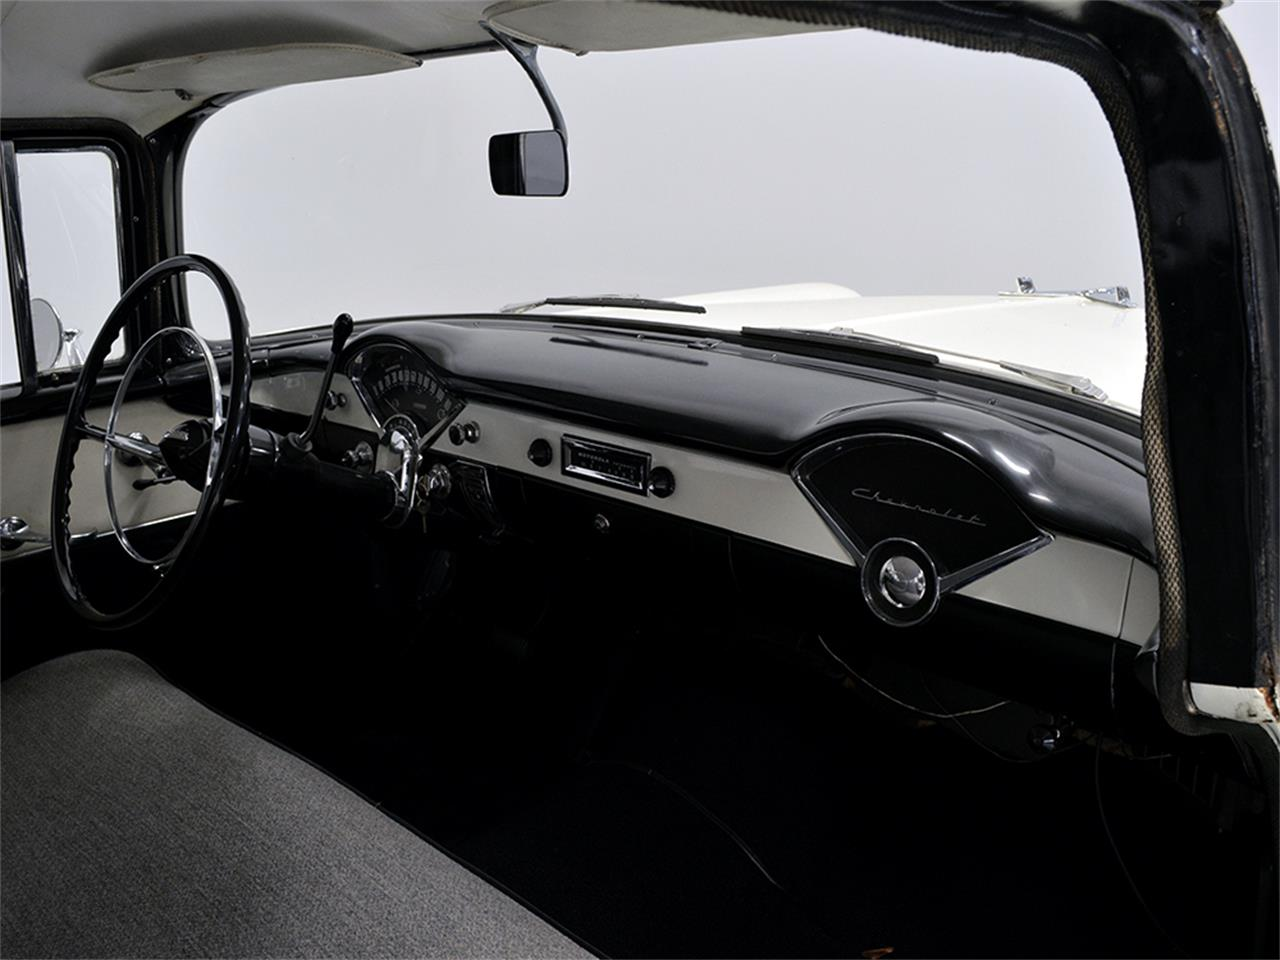 Large Picture of '56 Chevrolet 210 located in Ohio - $24,900.00 - K2KS